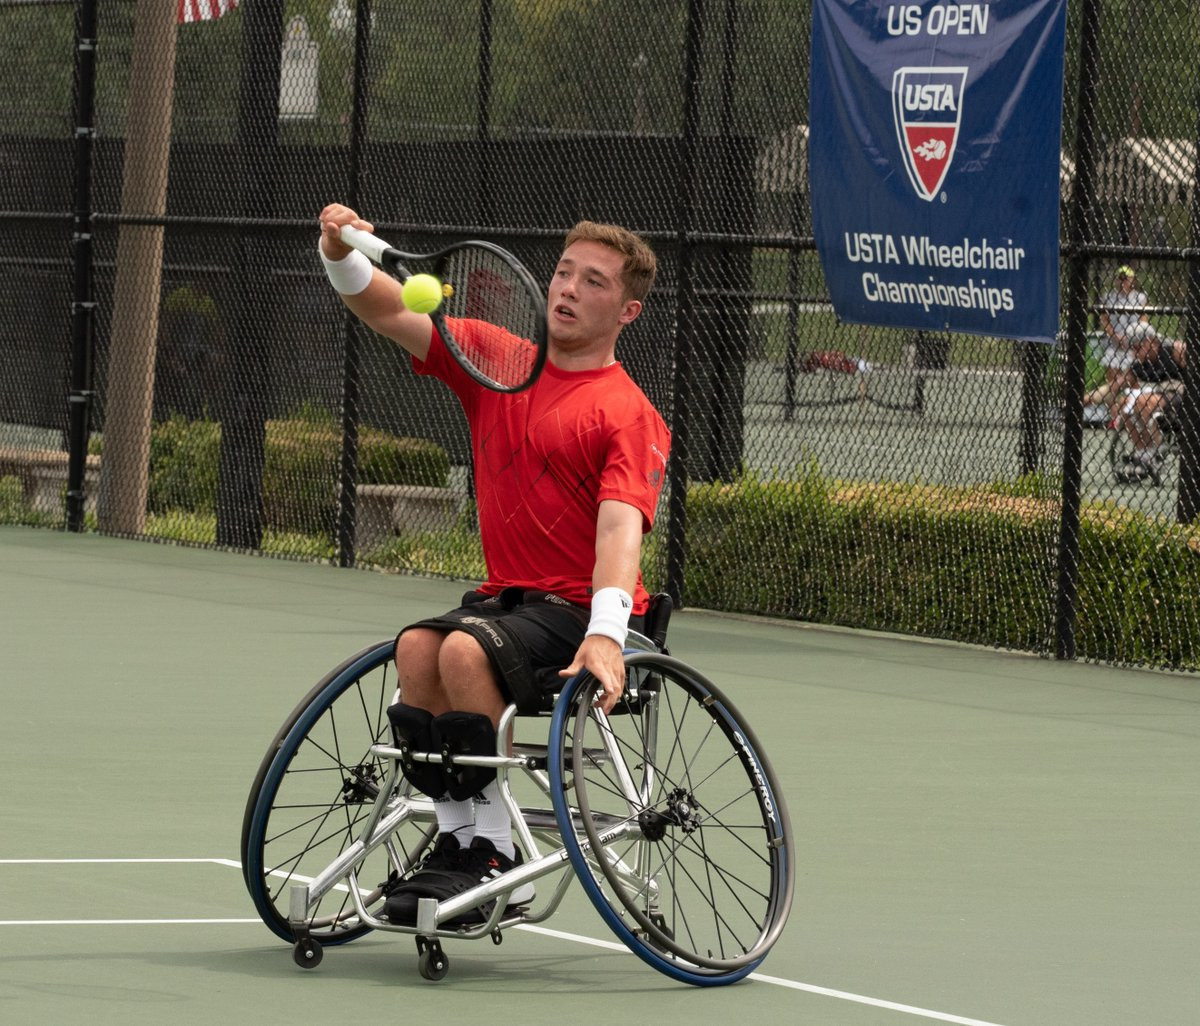 Houdet and Peifer win US Open Wheelchair Championships Super Series men's doubles final